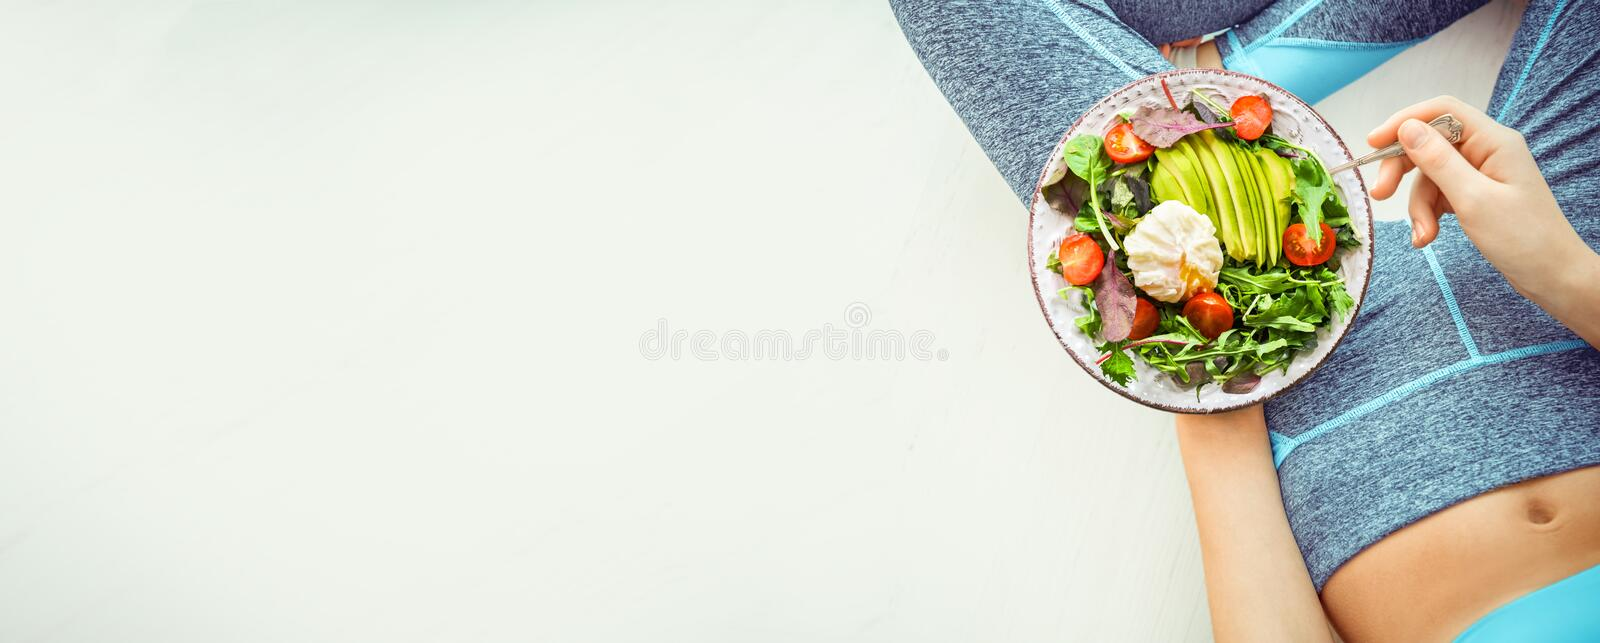 Young woman is resting and eating a healthy food after a workout. royalty free stock image